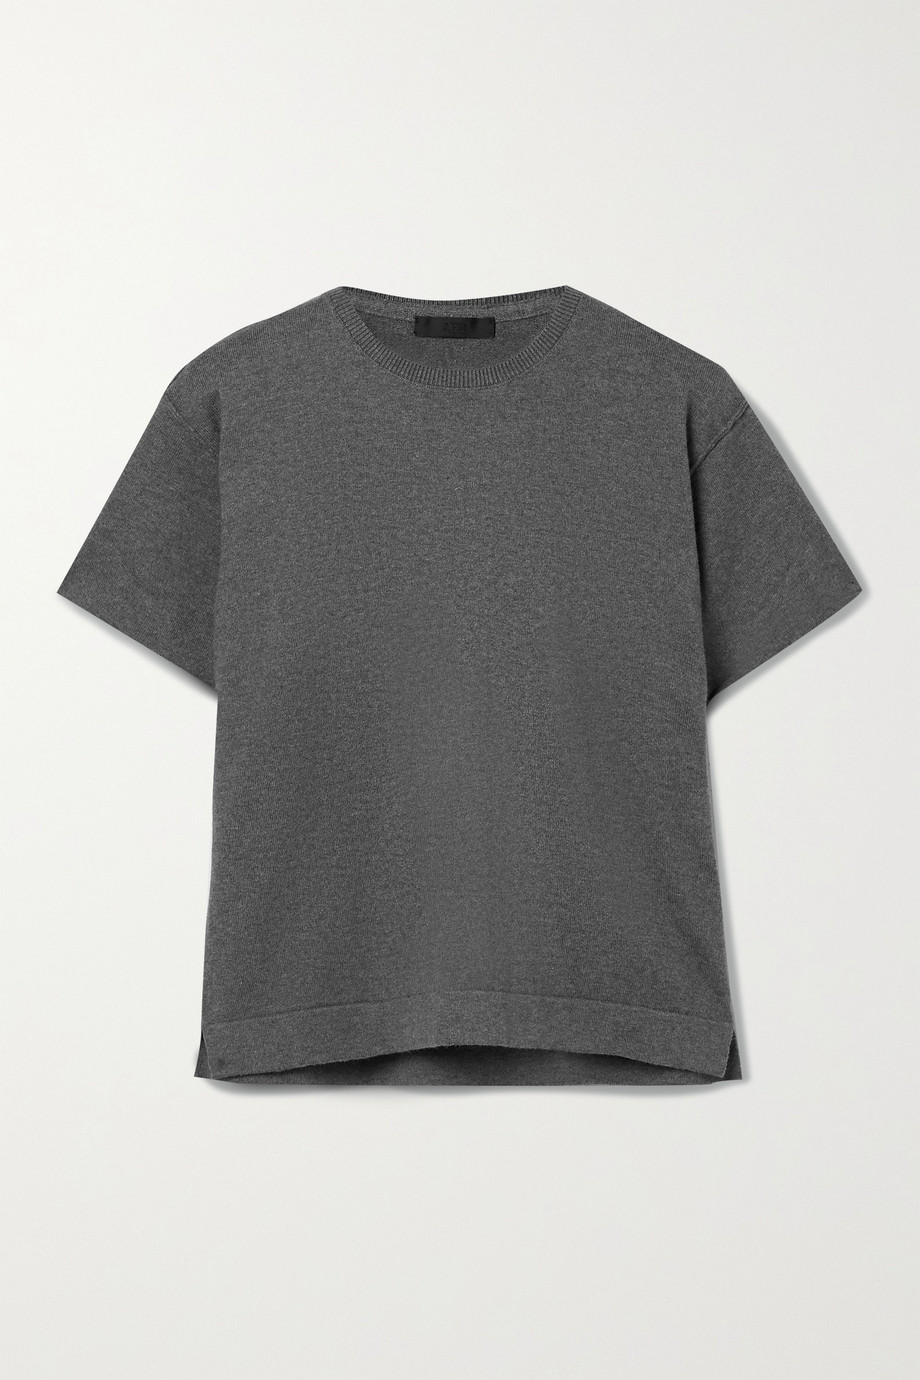 ATM ANTHONY THOMAS MELILLO Cotton and cashmere-blend T-shirt